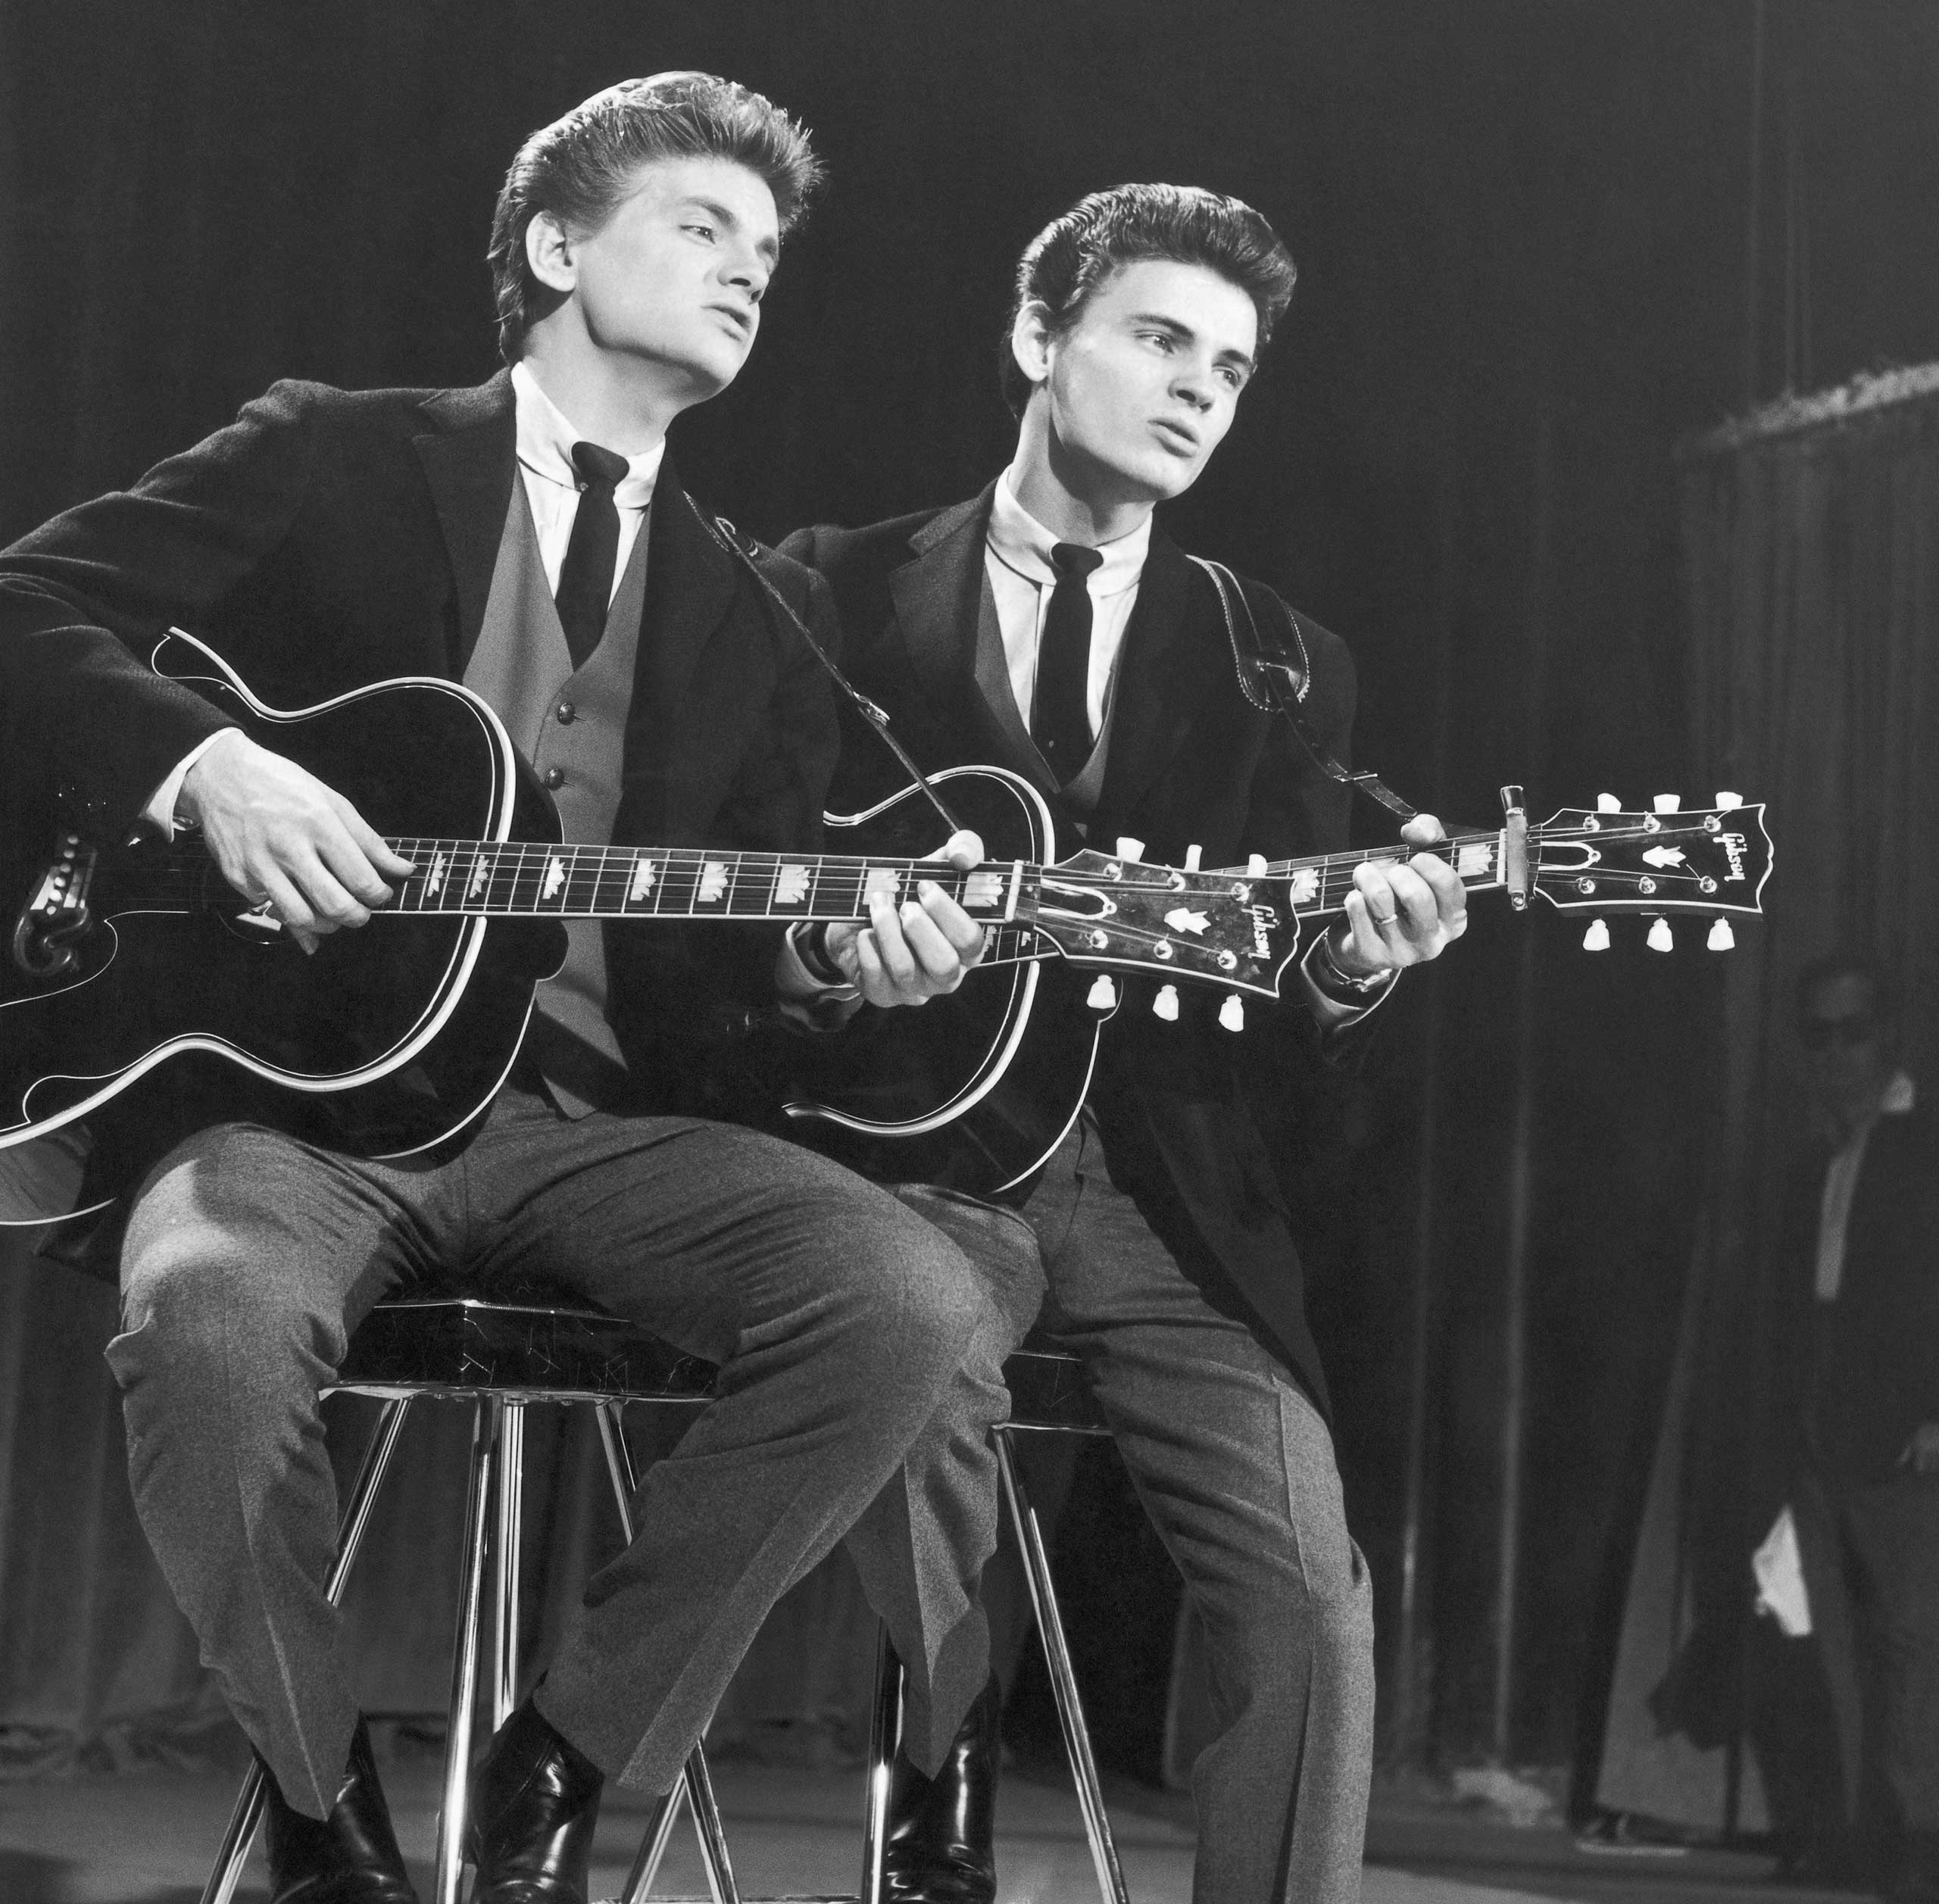 THE EVERLY BROTHERS: Though they harmonized beautifully on stage, Phil (left) and Don Everly quarreled often.